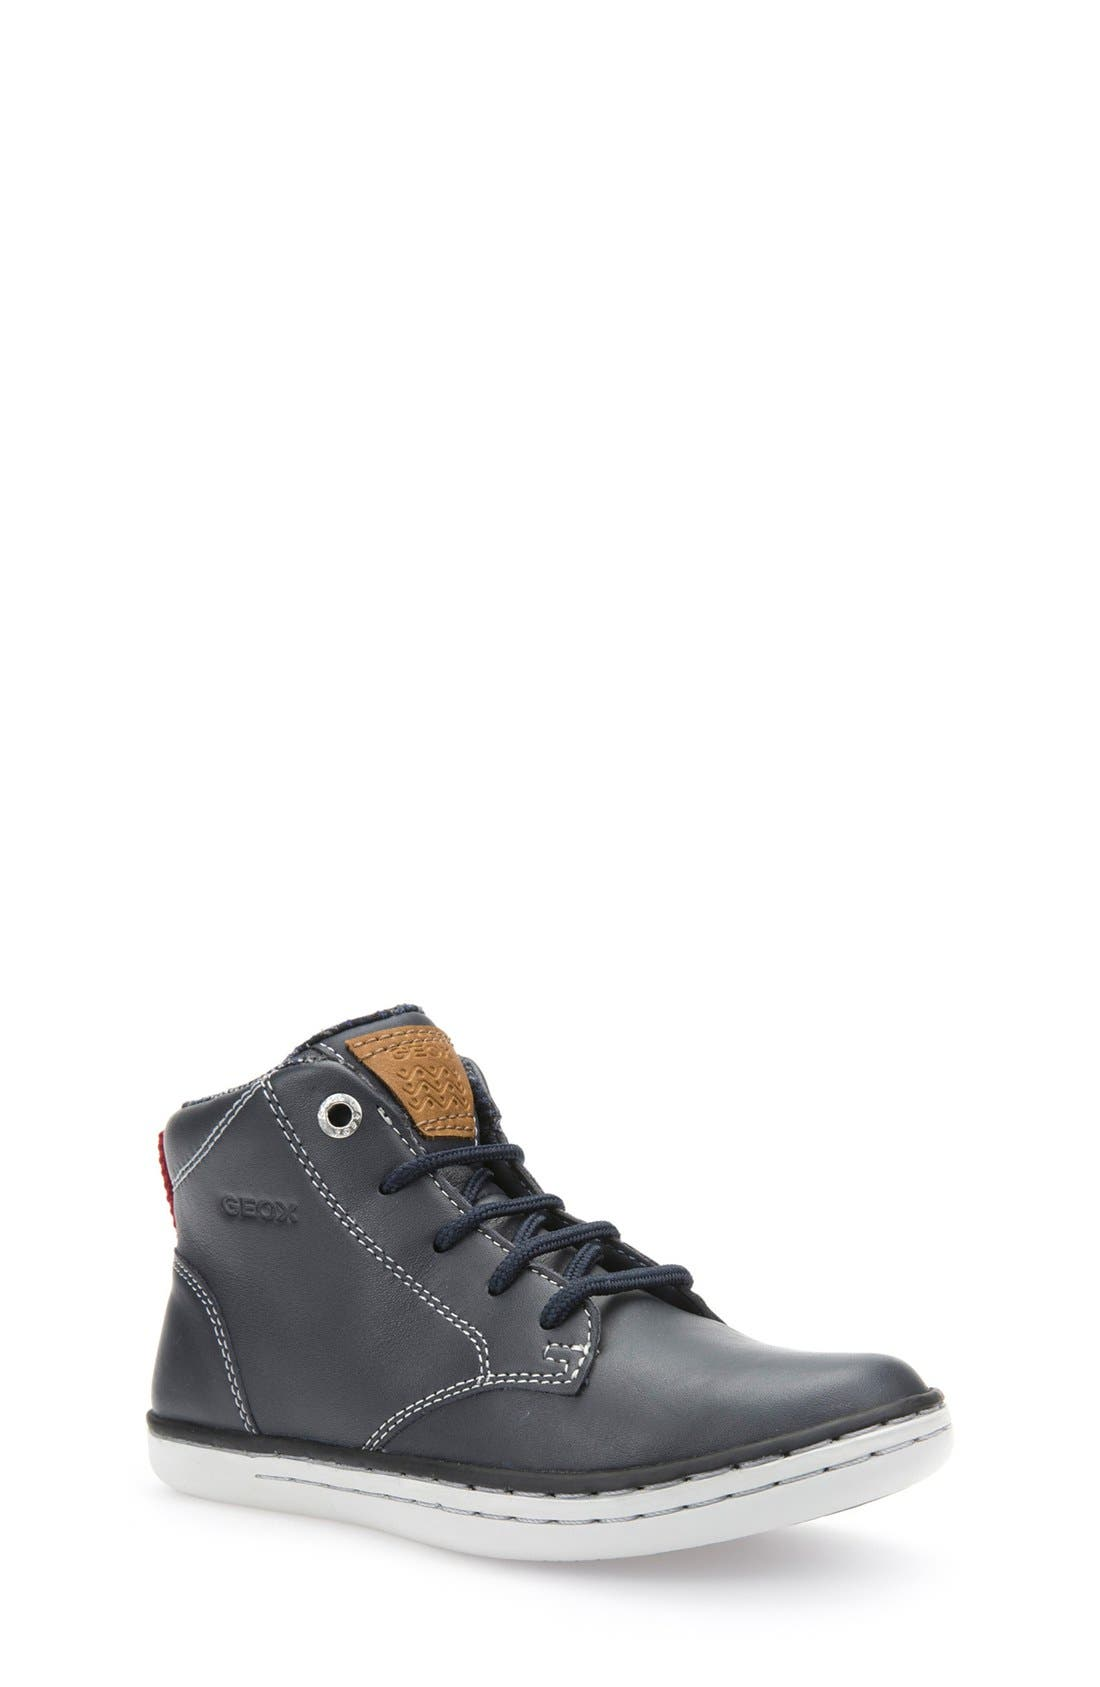 GEOX 'Garcia' High Top Sneaker